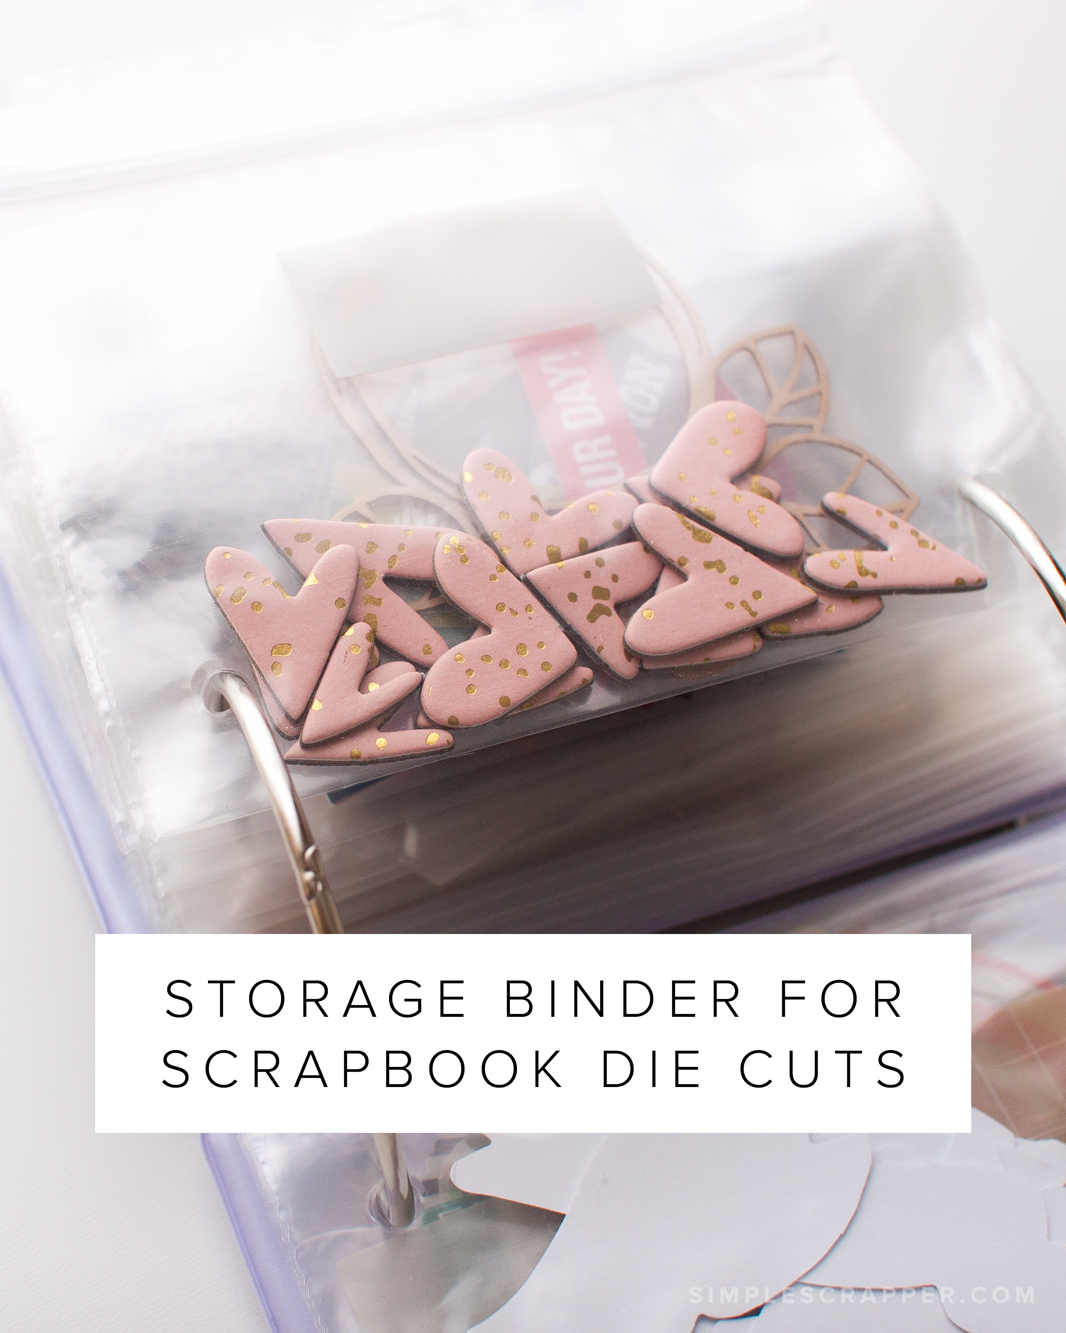 Storage Binder for Scrapbook Die Cuts